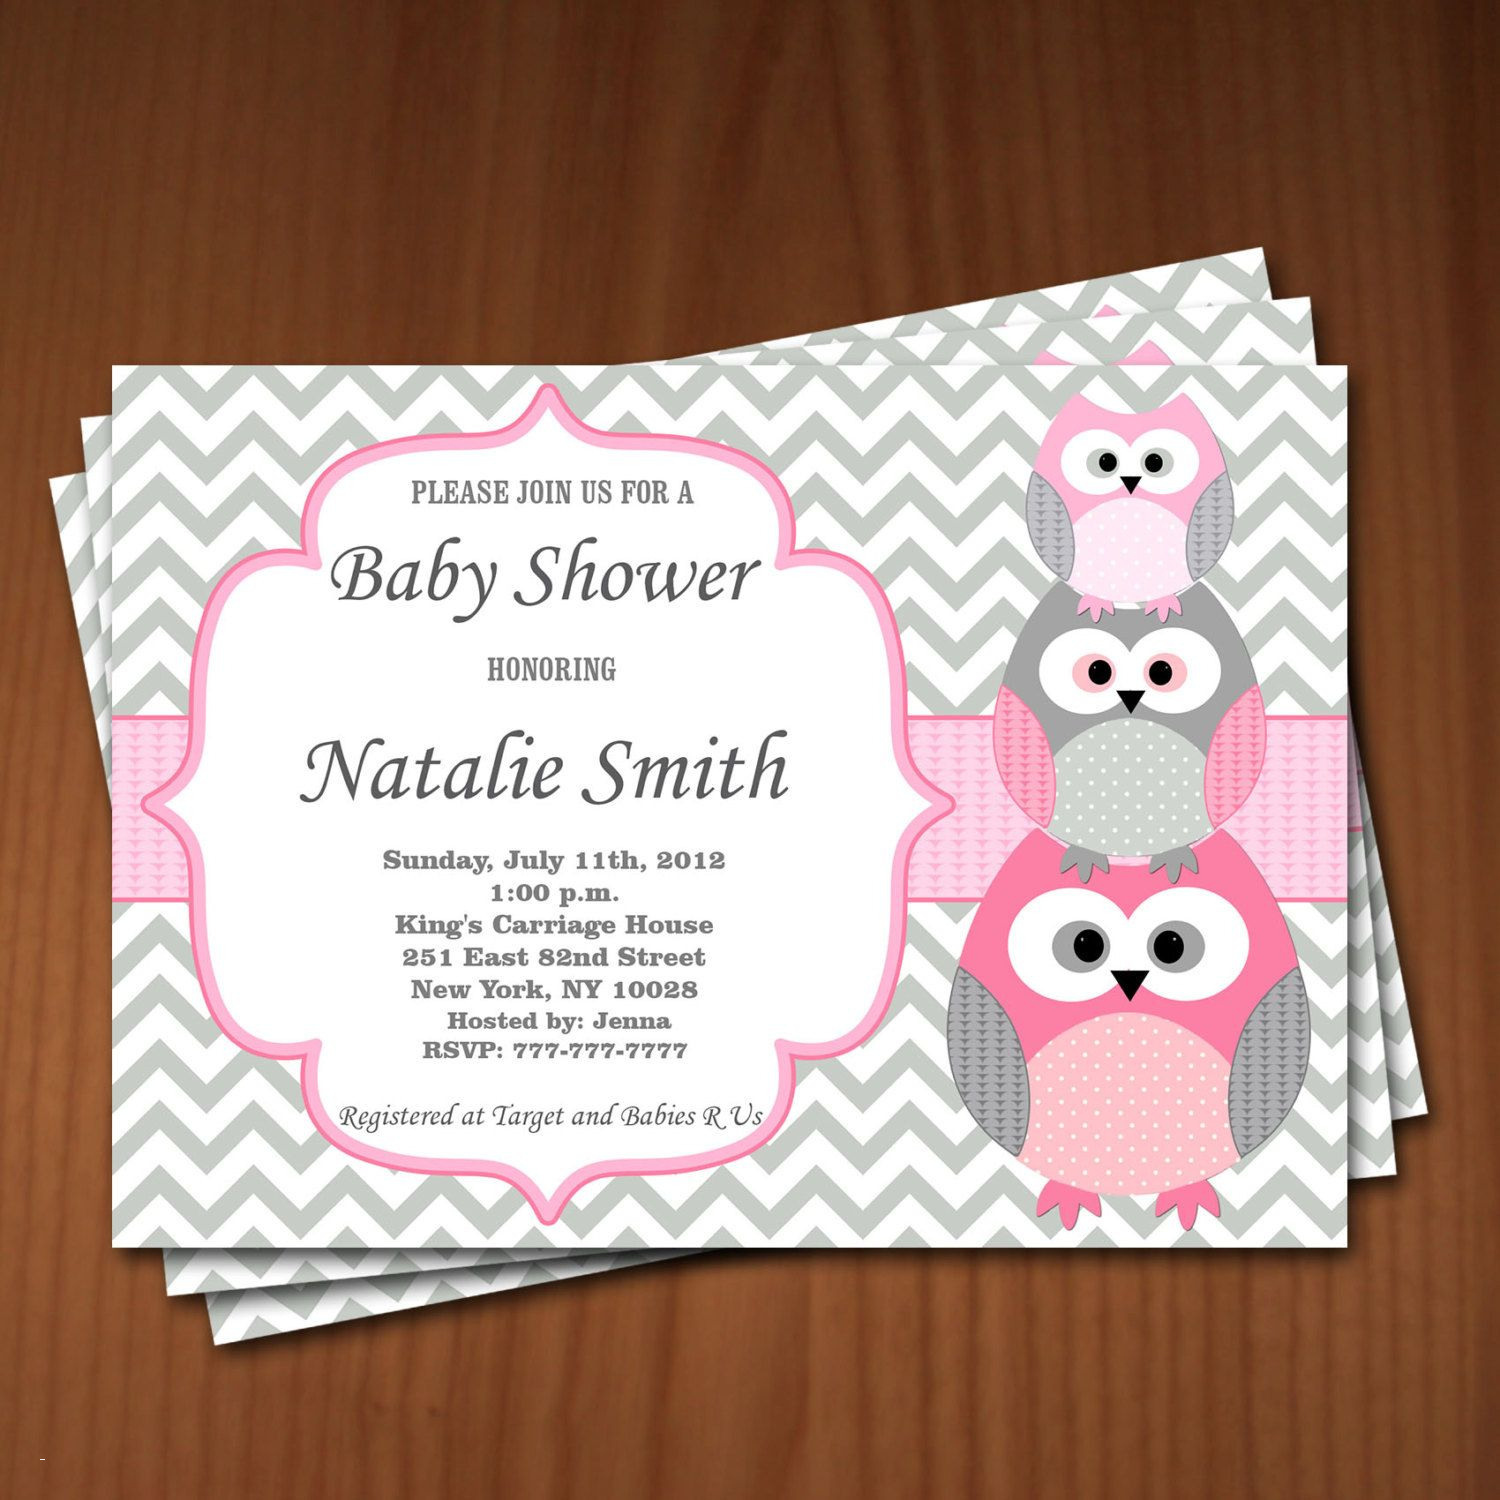 Full Size of Baby Shower:63+ Delightful Cheap Baby Shower Invitations Image Inspirations Cheap Baby Shower Invitations Baby Shower Present Baby Shower Bingo Arreglos Para Baby Shower Personalized Baby Shower Baby Shower Paper